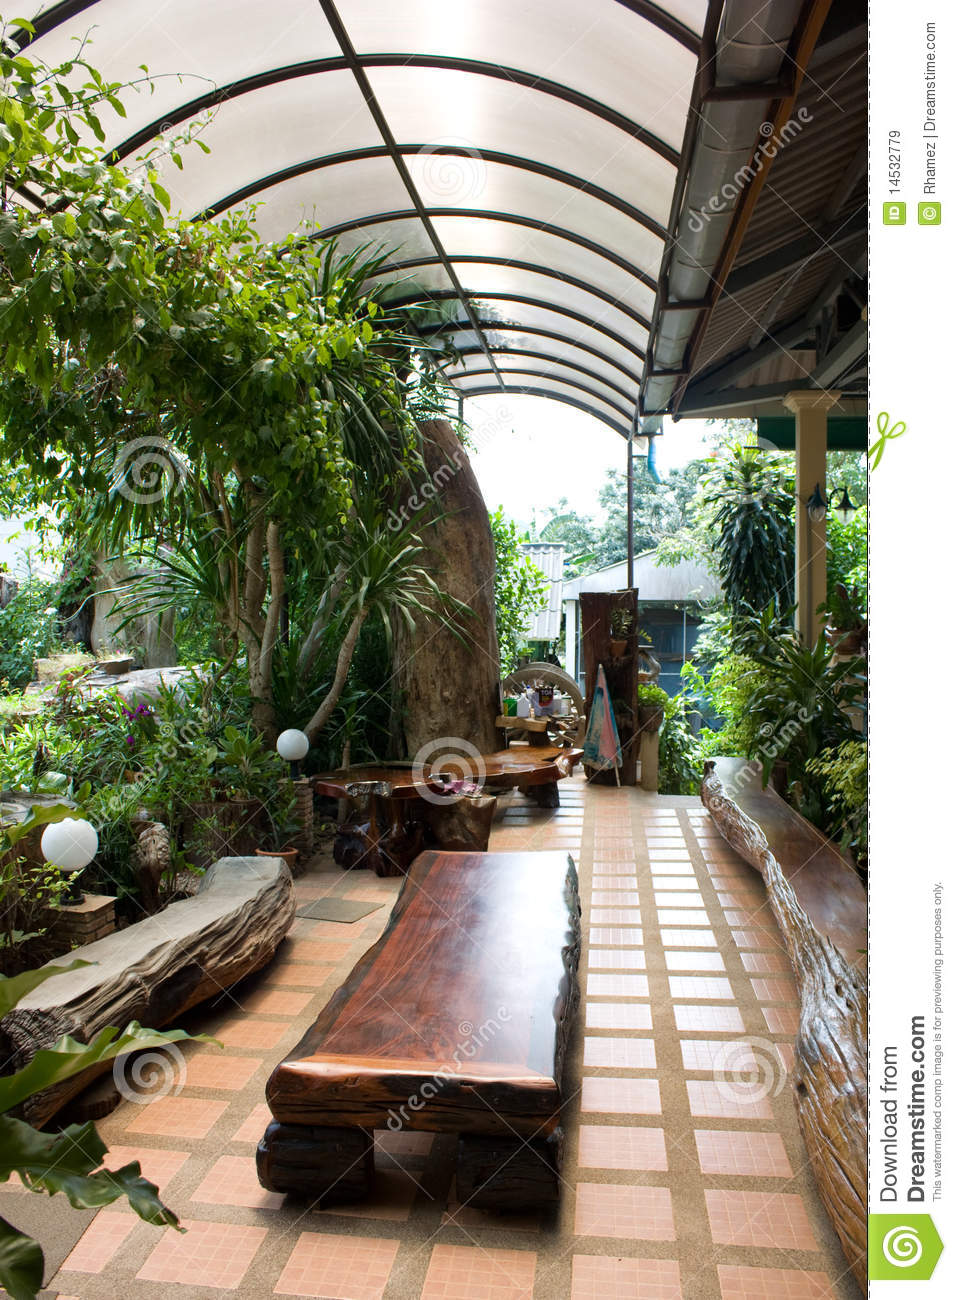 Interior garden awesome amazing home atrium multilevel for Interior garden design